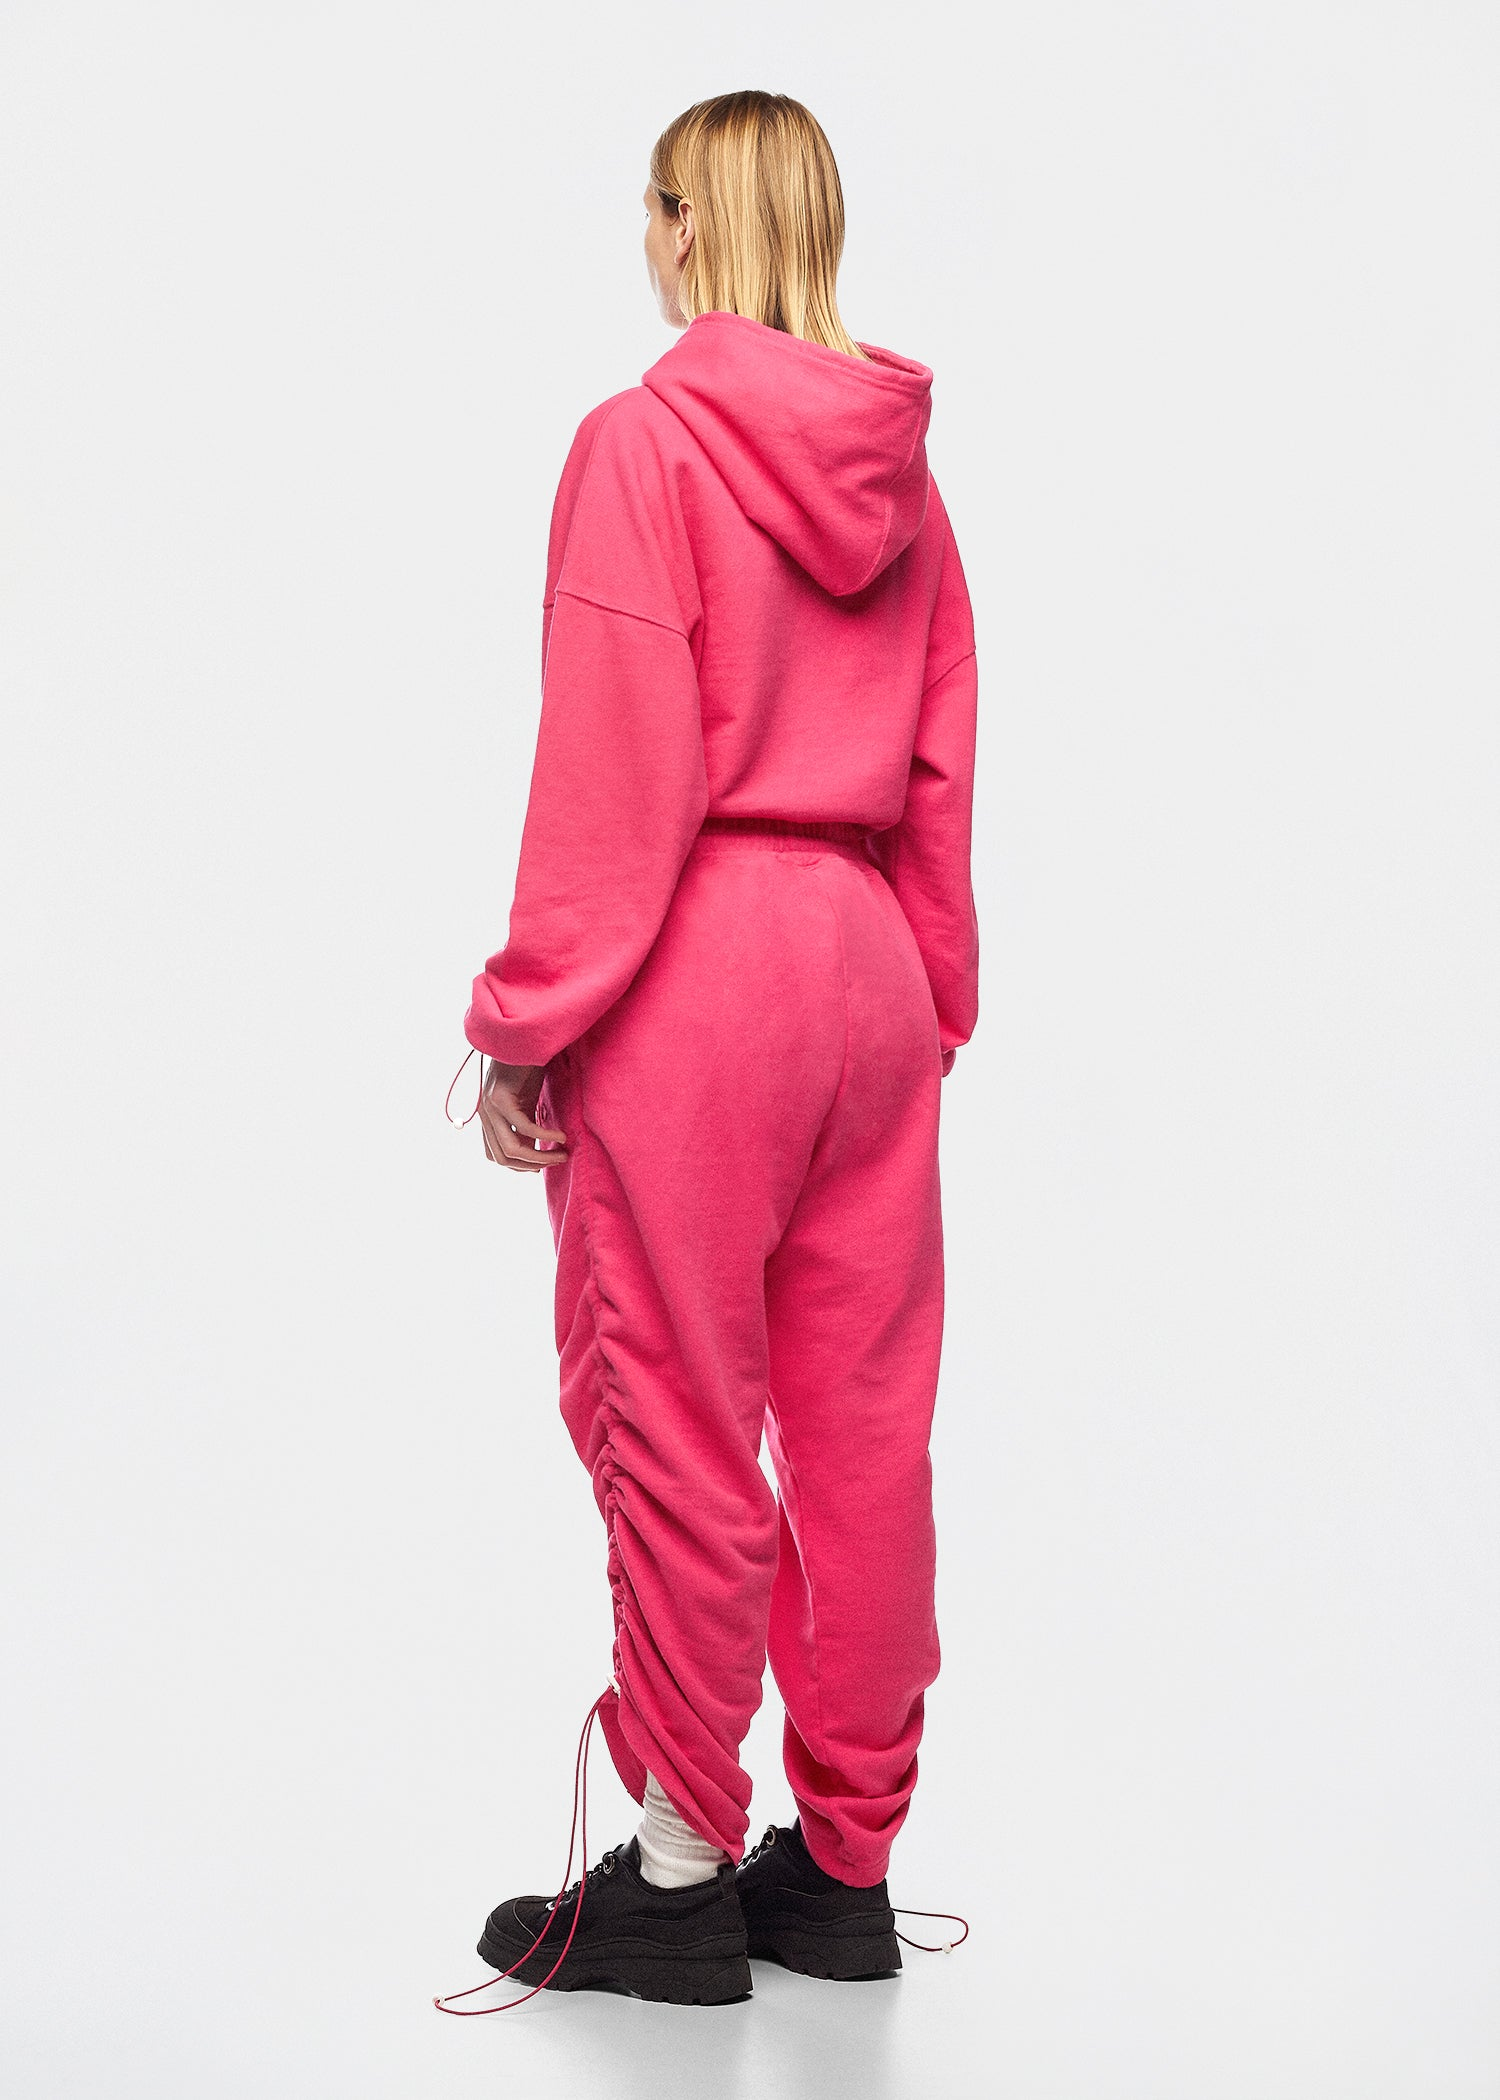 PETRUS PINK TRACK TROUSERS